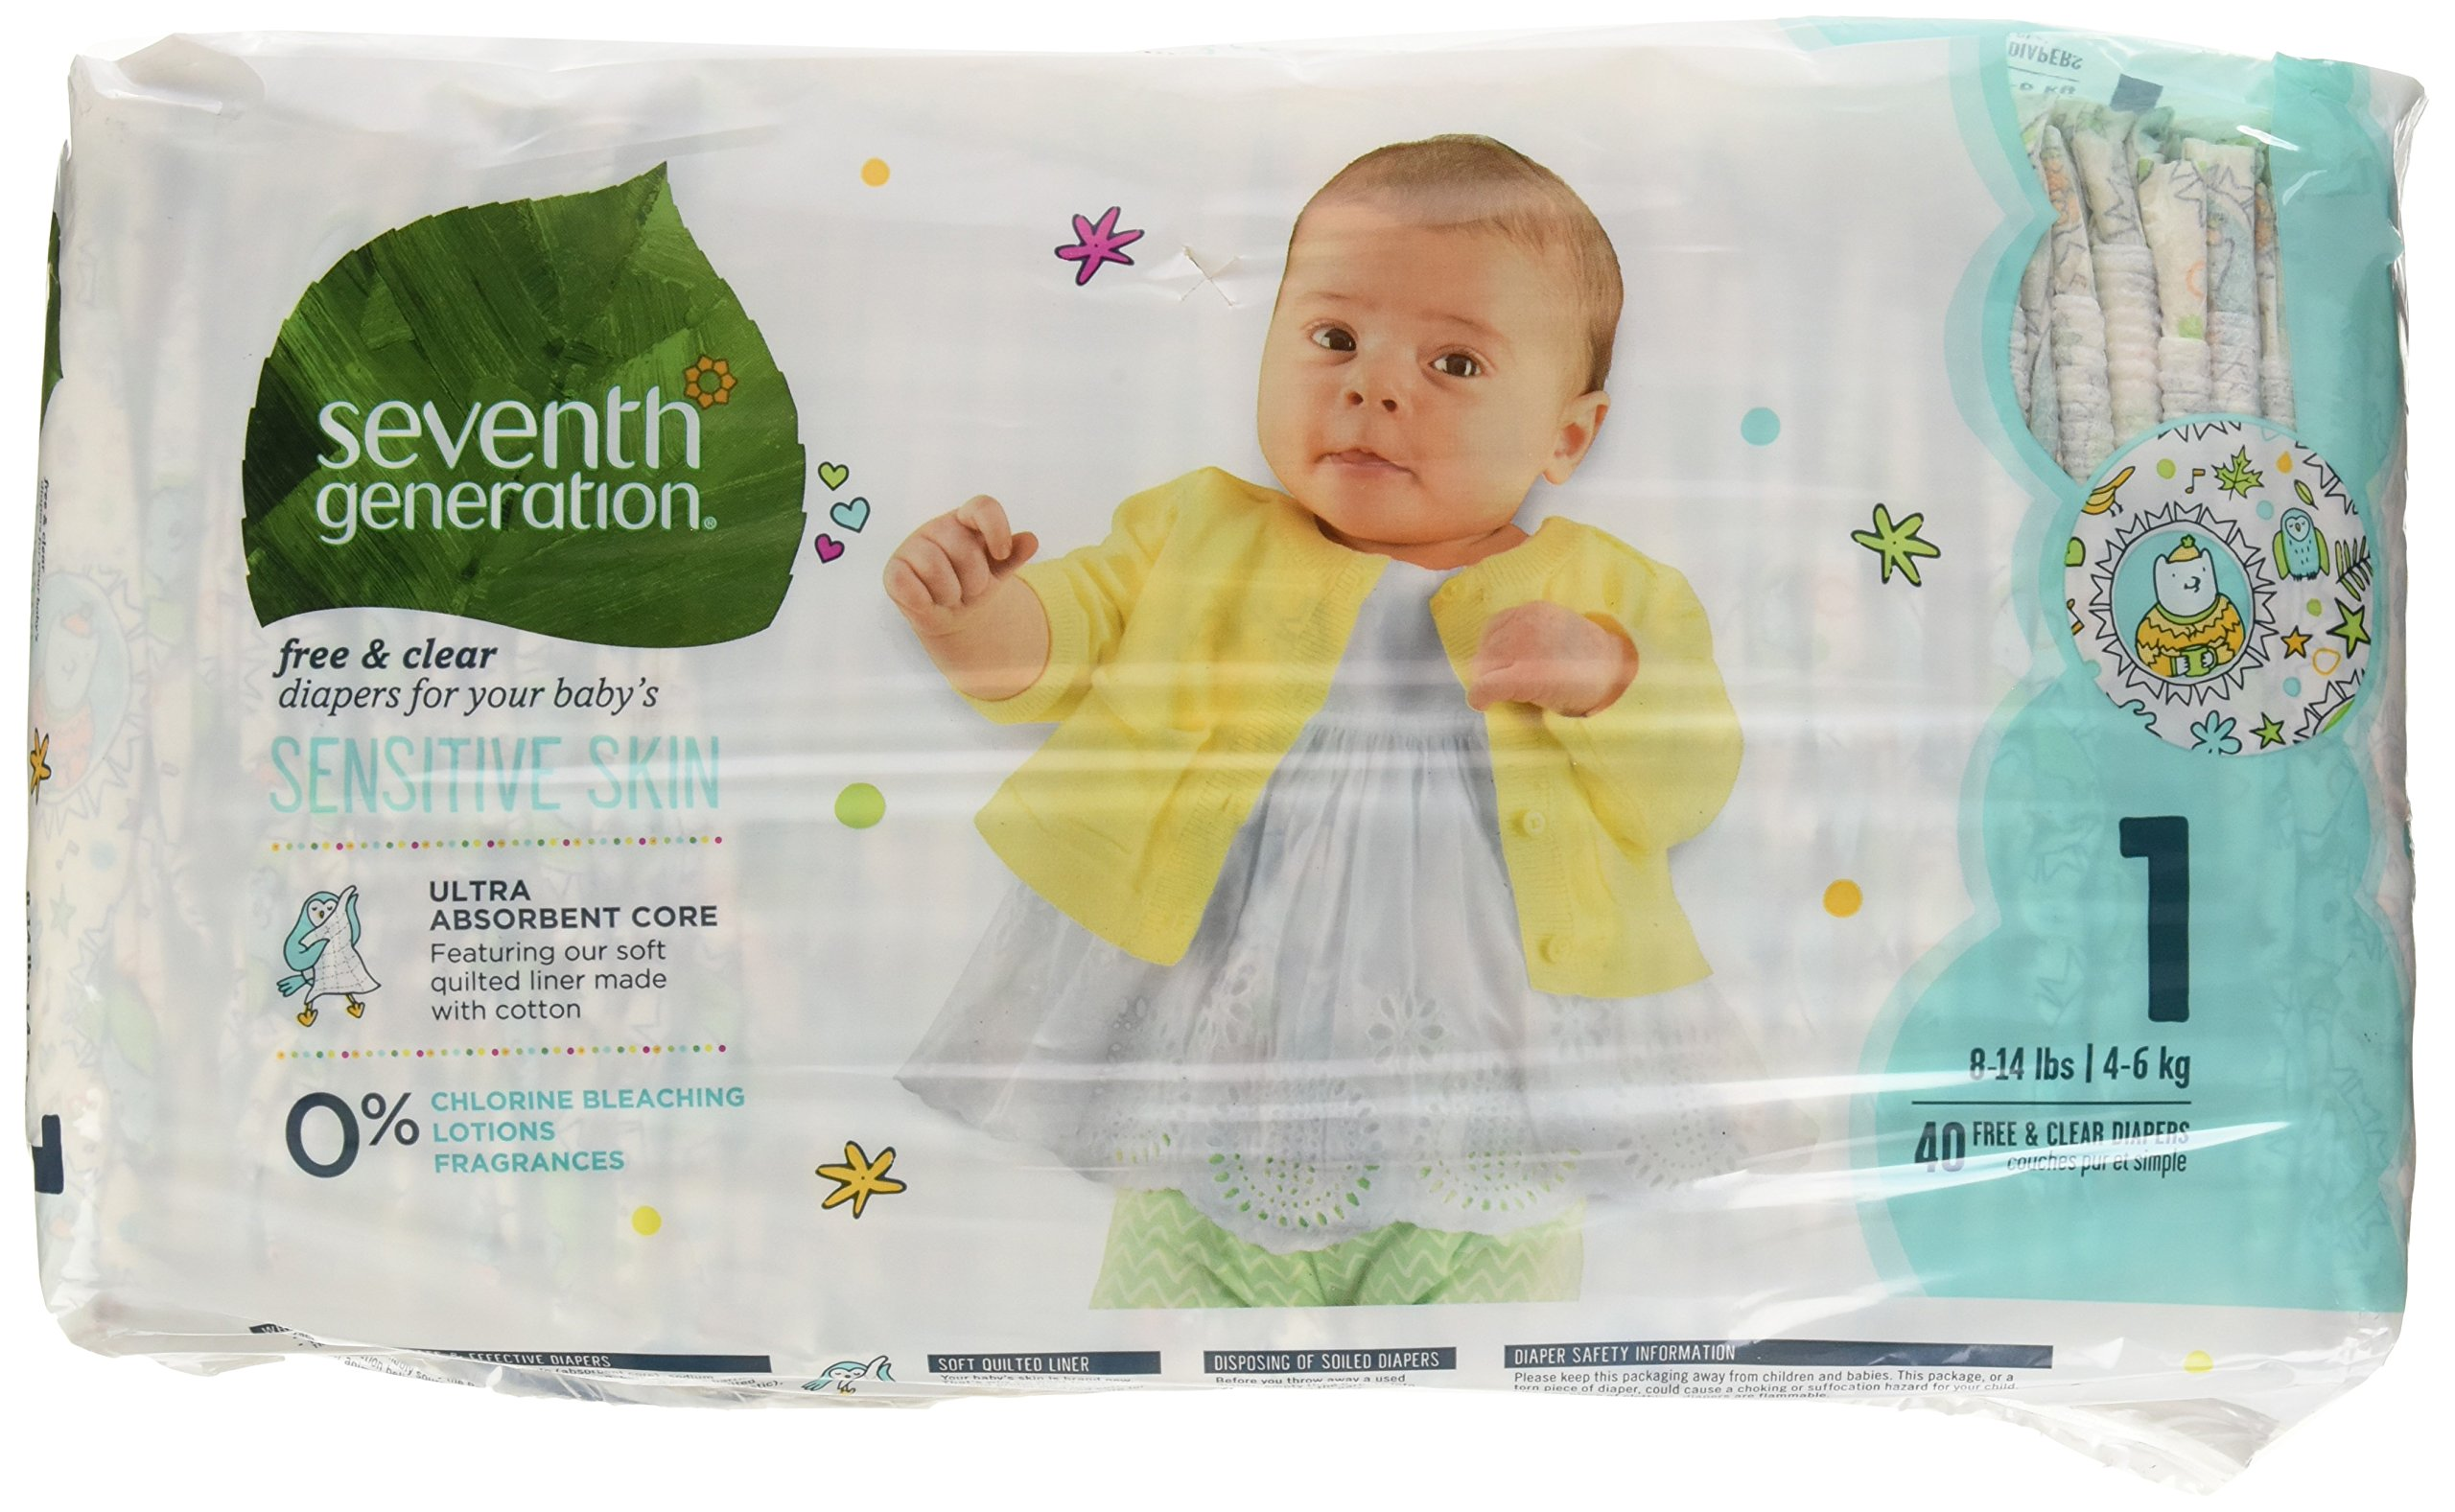 Seventh Generation Baby Diapers, Free and Clear for Sensitive Skin, with Animal Prints, Size 1, 40 Count (Packaging May Vary)